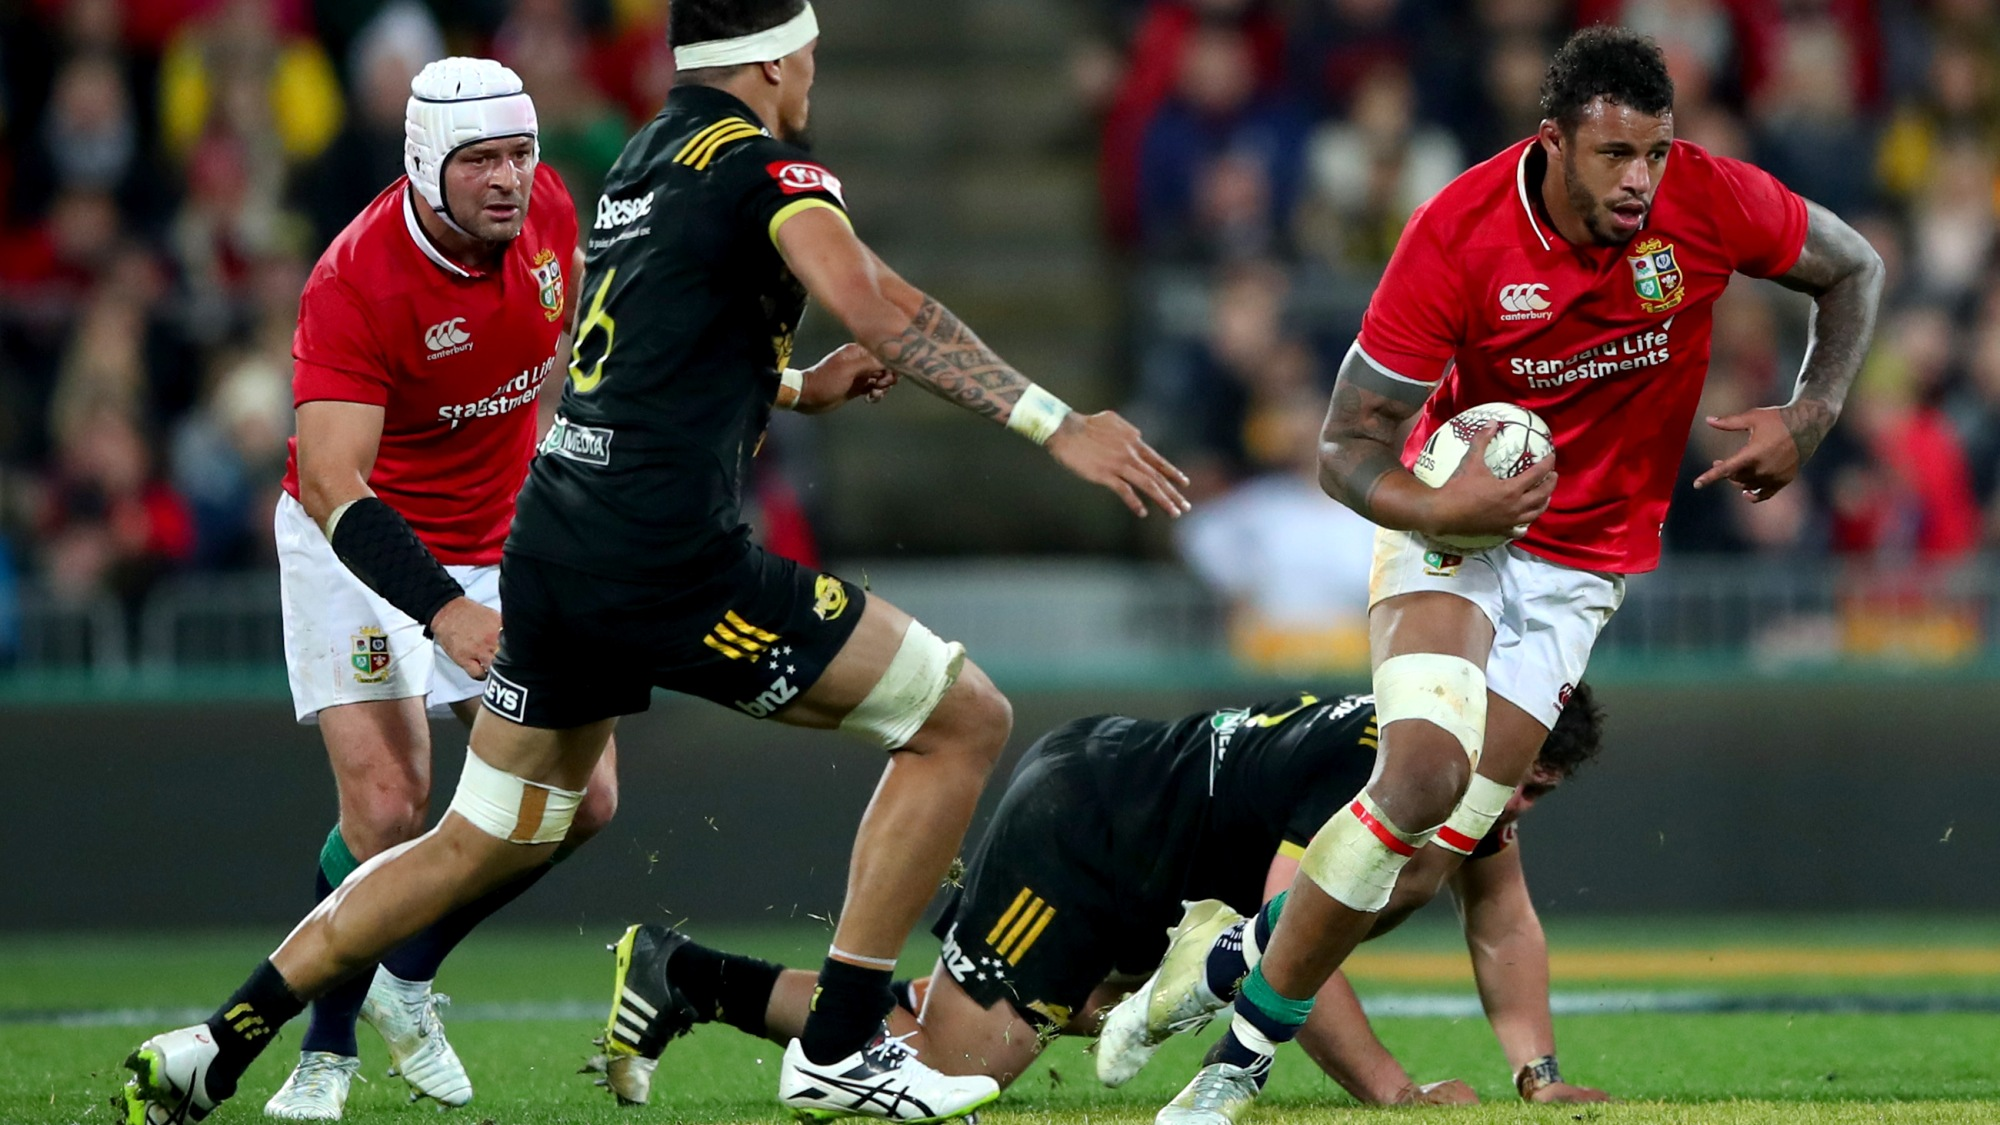 Lawes hopes he has stated his case for Test selection